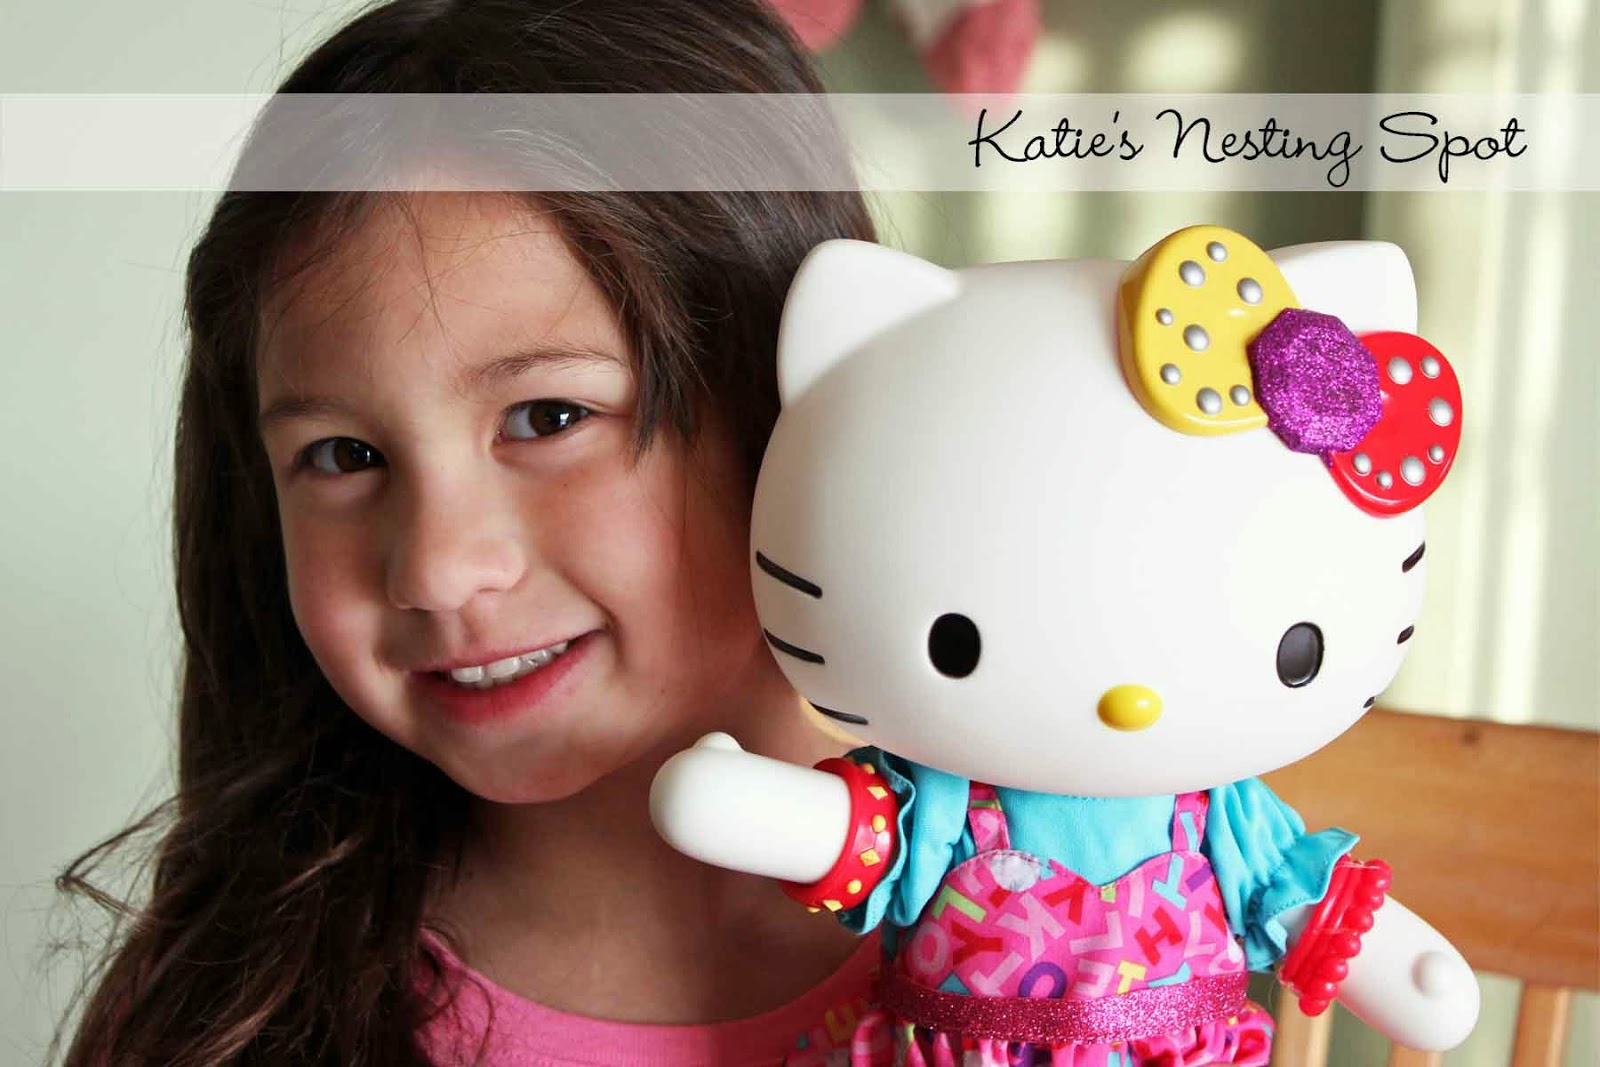 Katie's Nesting Spot: Purrfect Gift for Hello Kitty Fans